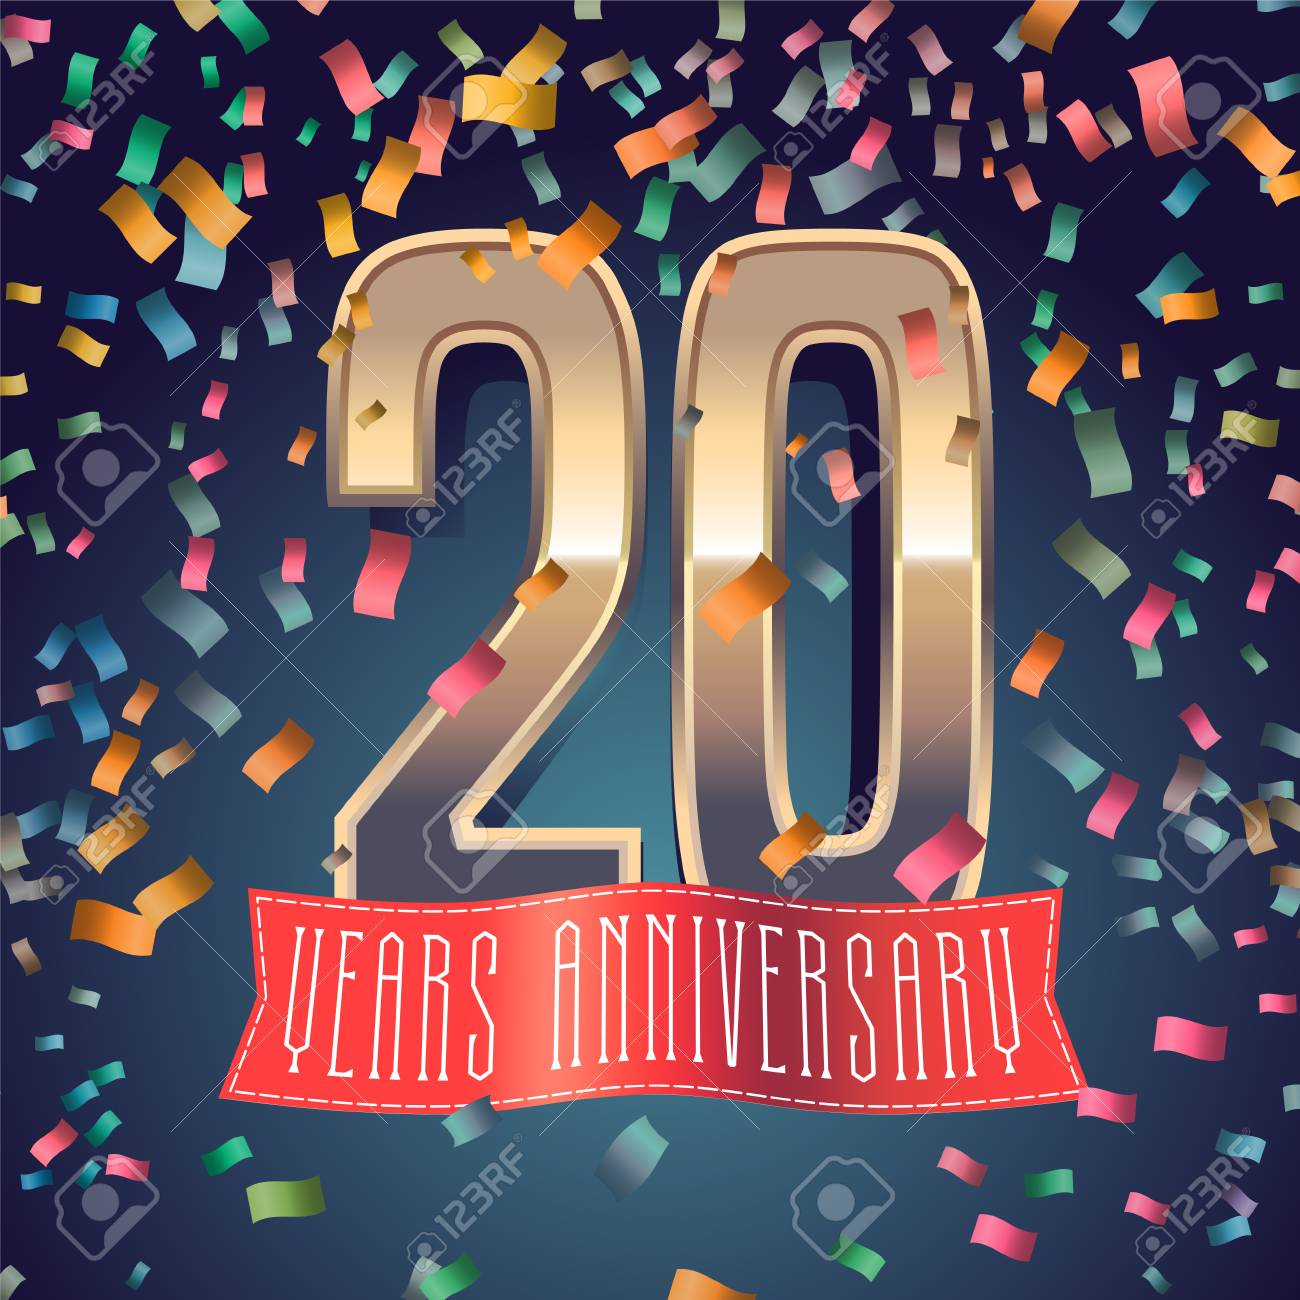 20 Years Anniversary Icon Royalty Free Cliparts Vectors And Stock